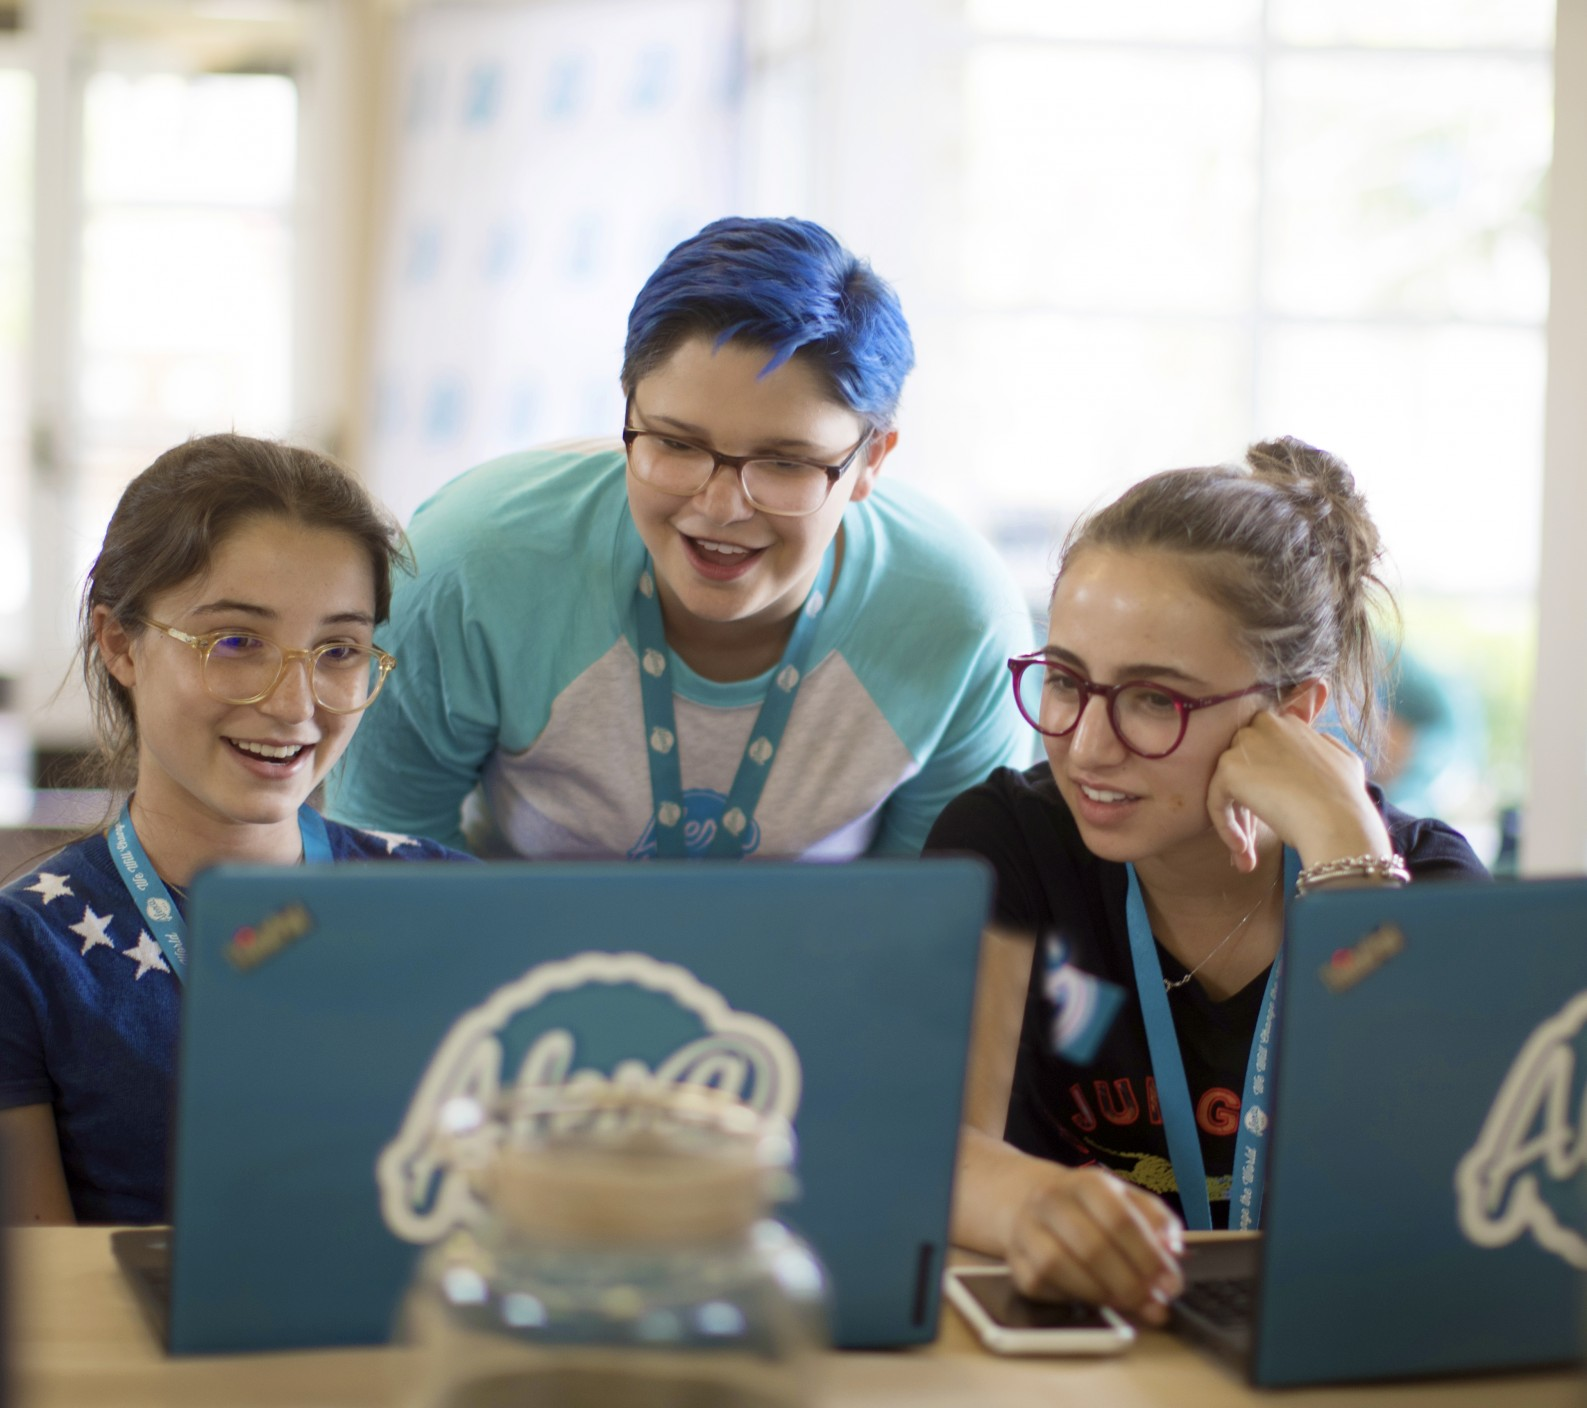 Summer Program - Video Gaming | Alexa Cafe: All-Girls STEM Camp | Held at Lake Forest